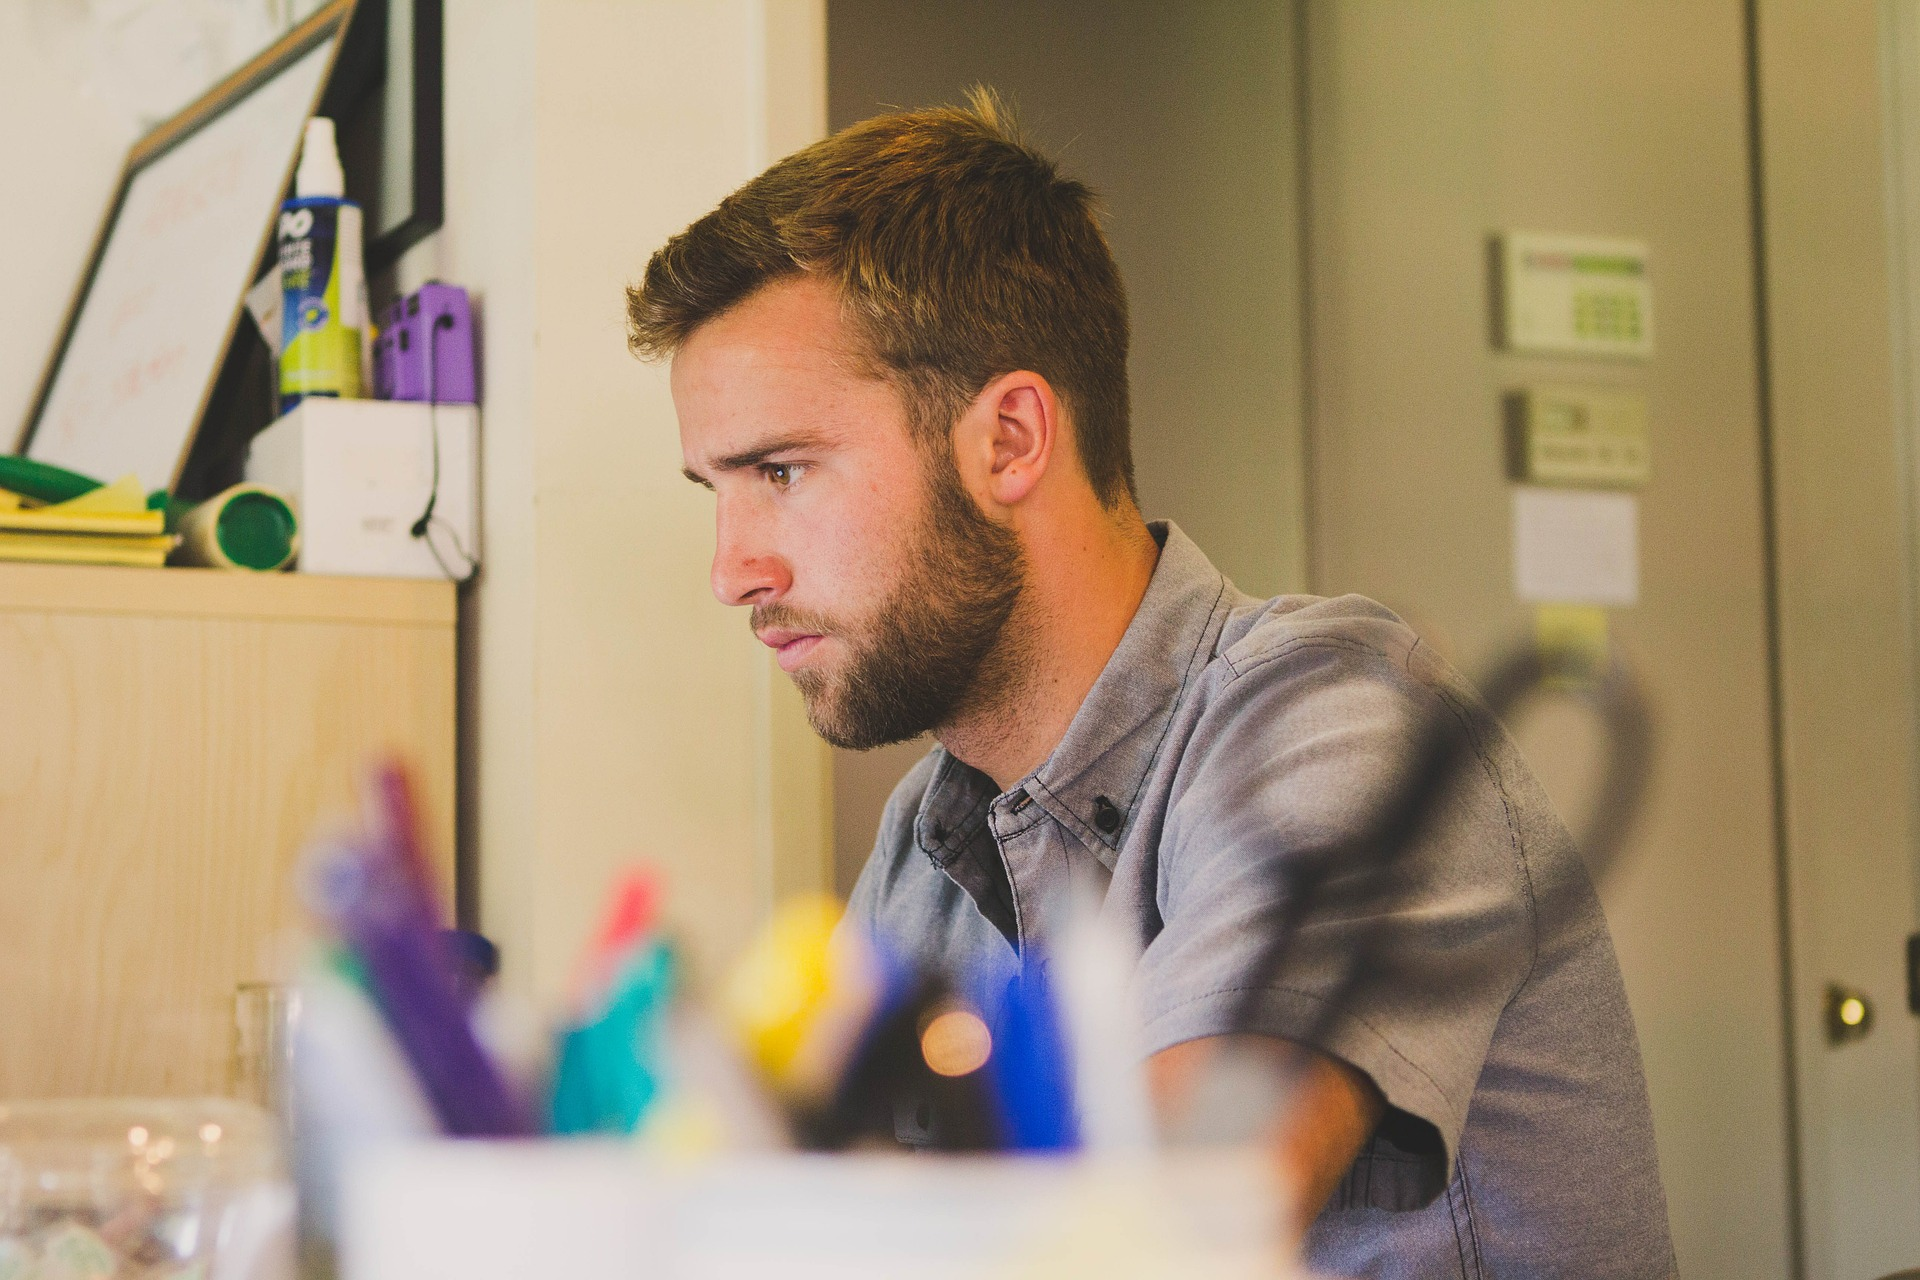 find out if you are absorbed by your work or a workaholic